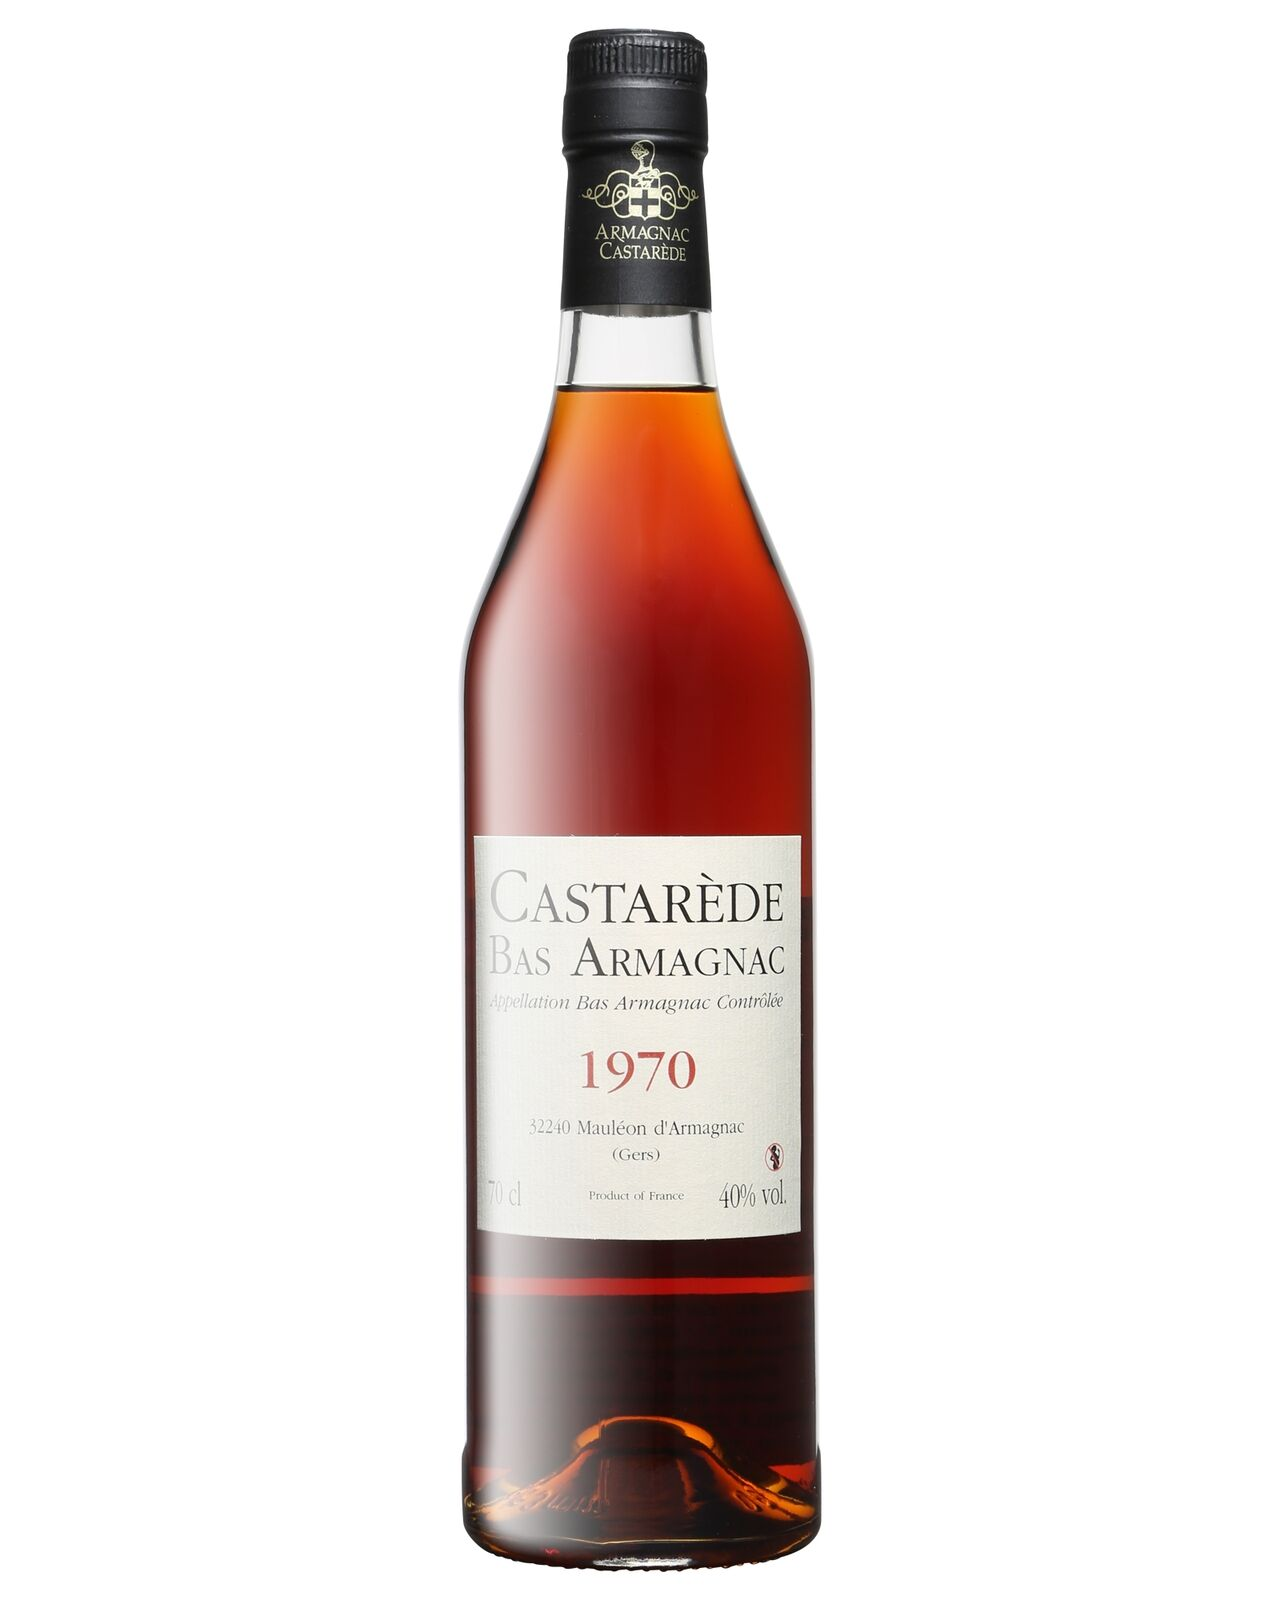 Castarede 1970 Armagnac 700mL Castarède case of 6